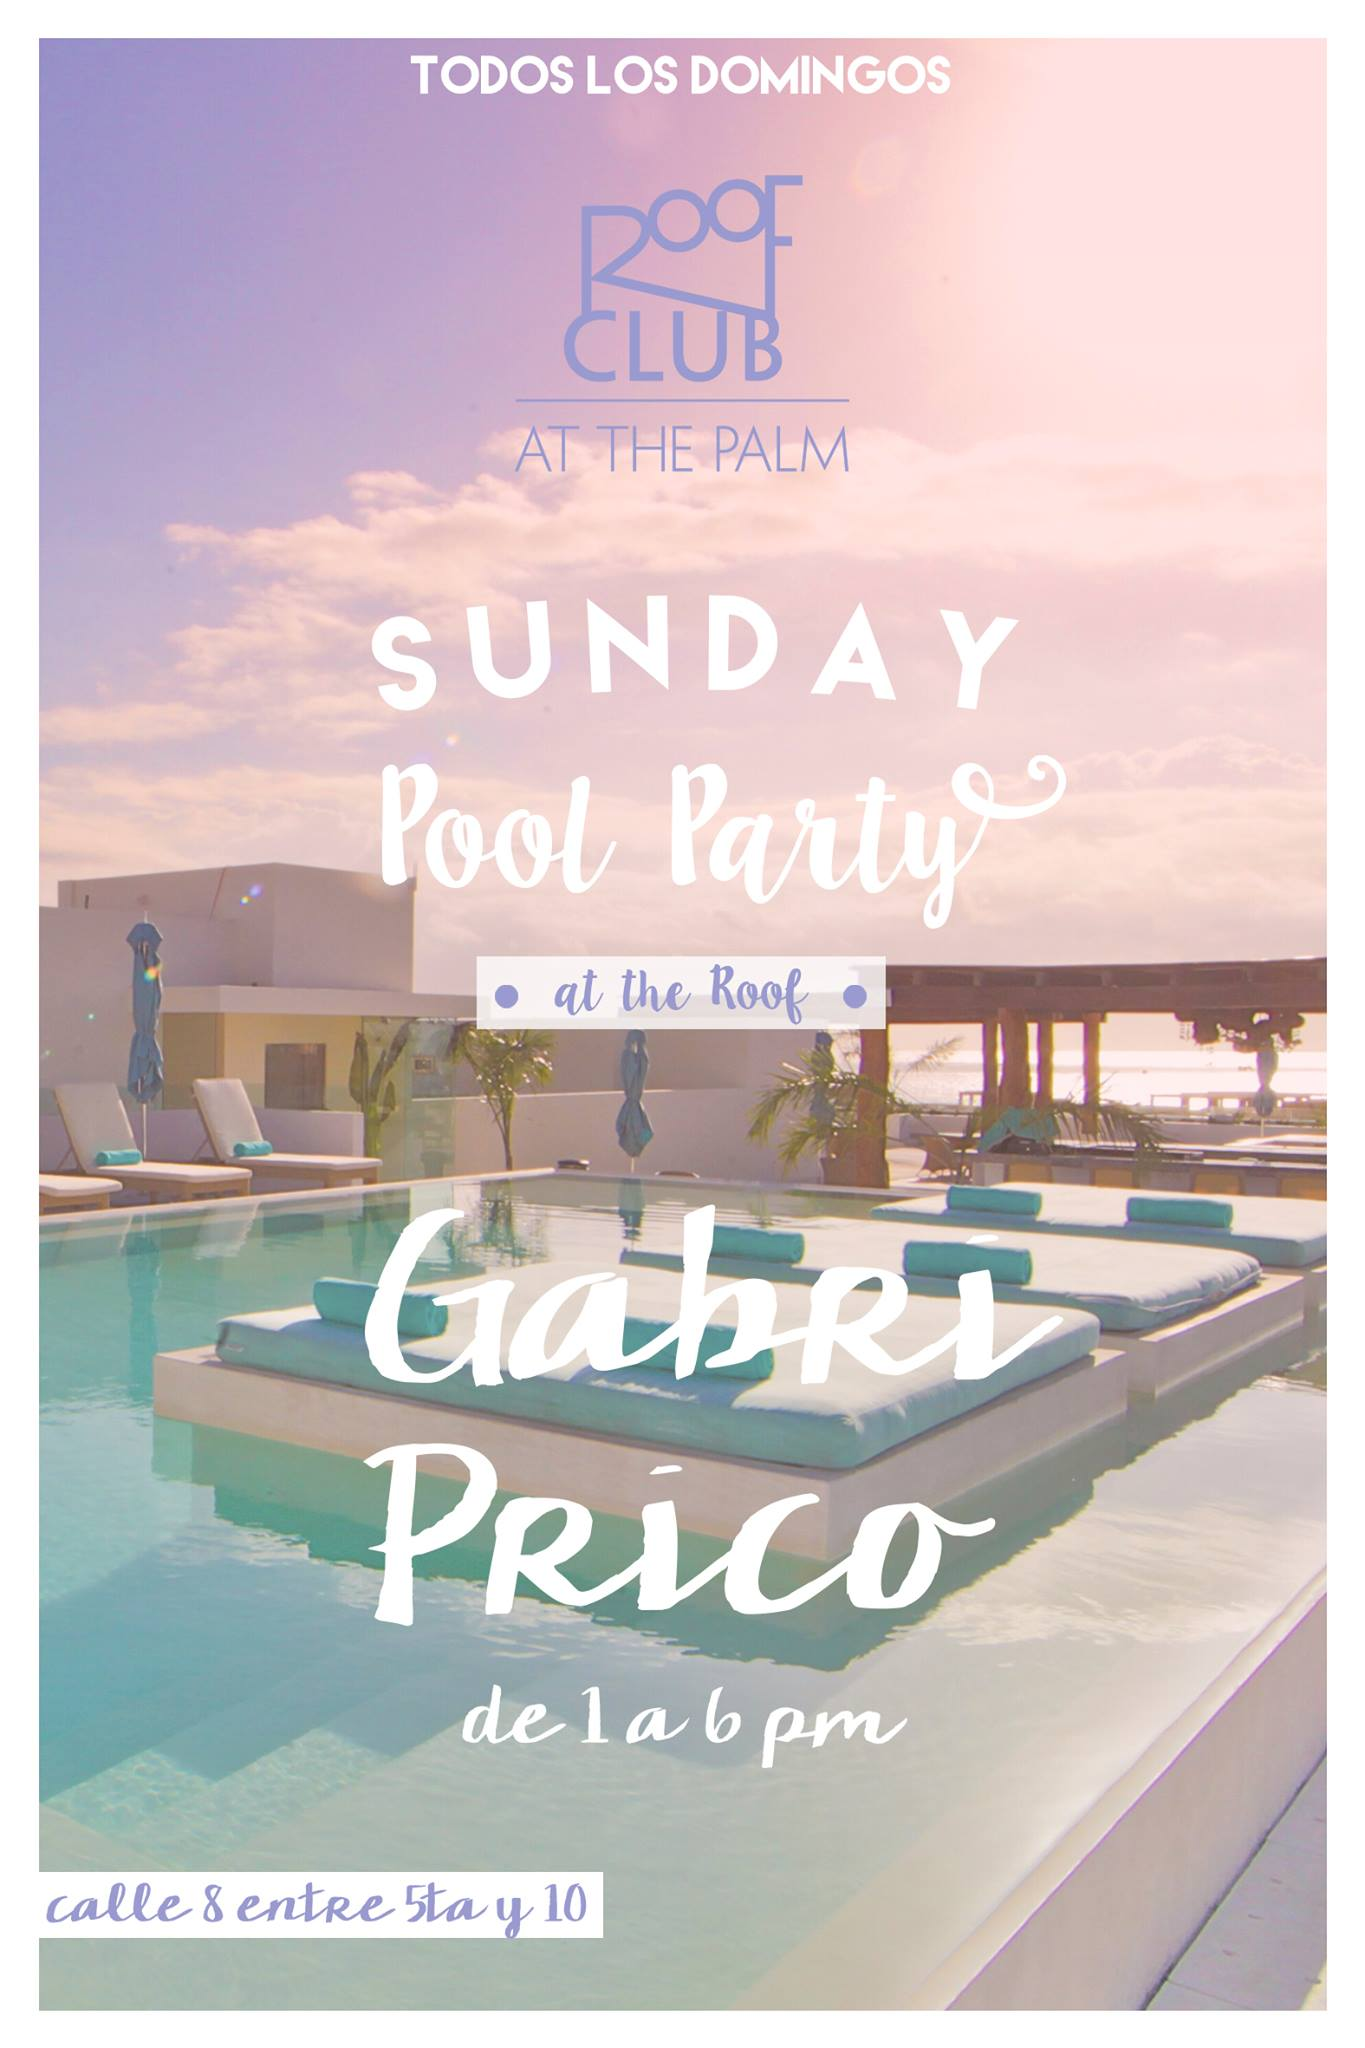 Pool Party @ Roof Club